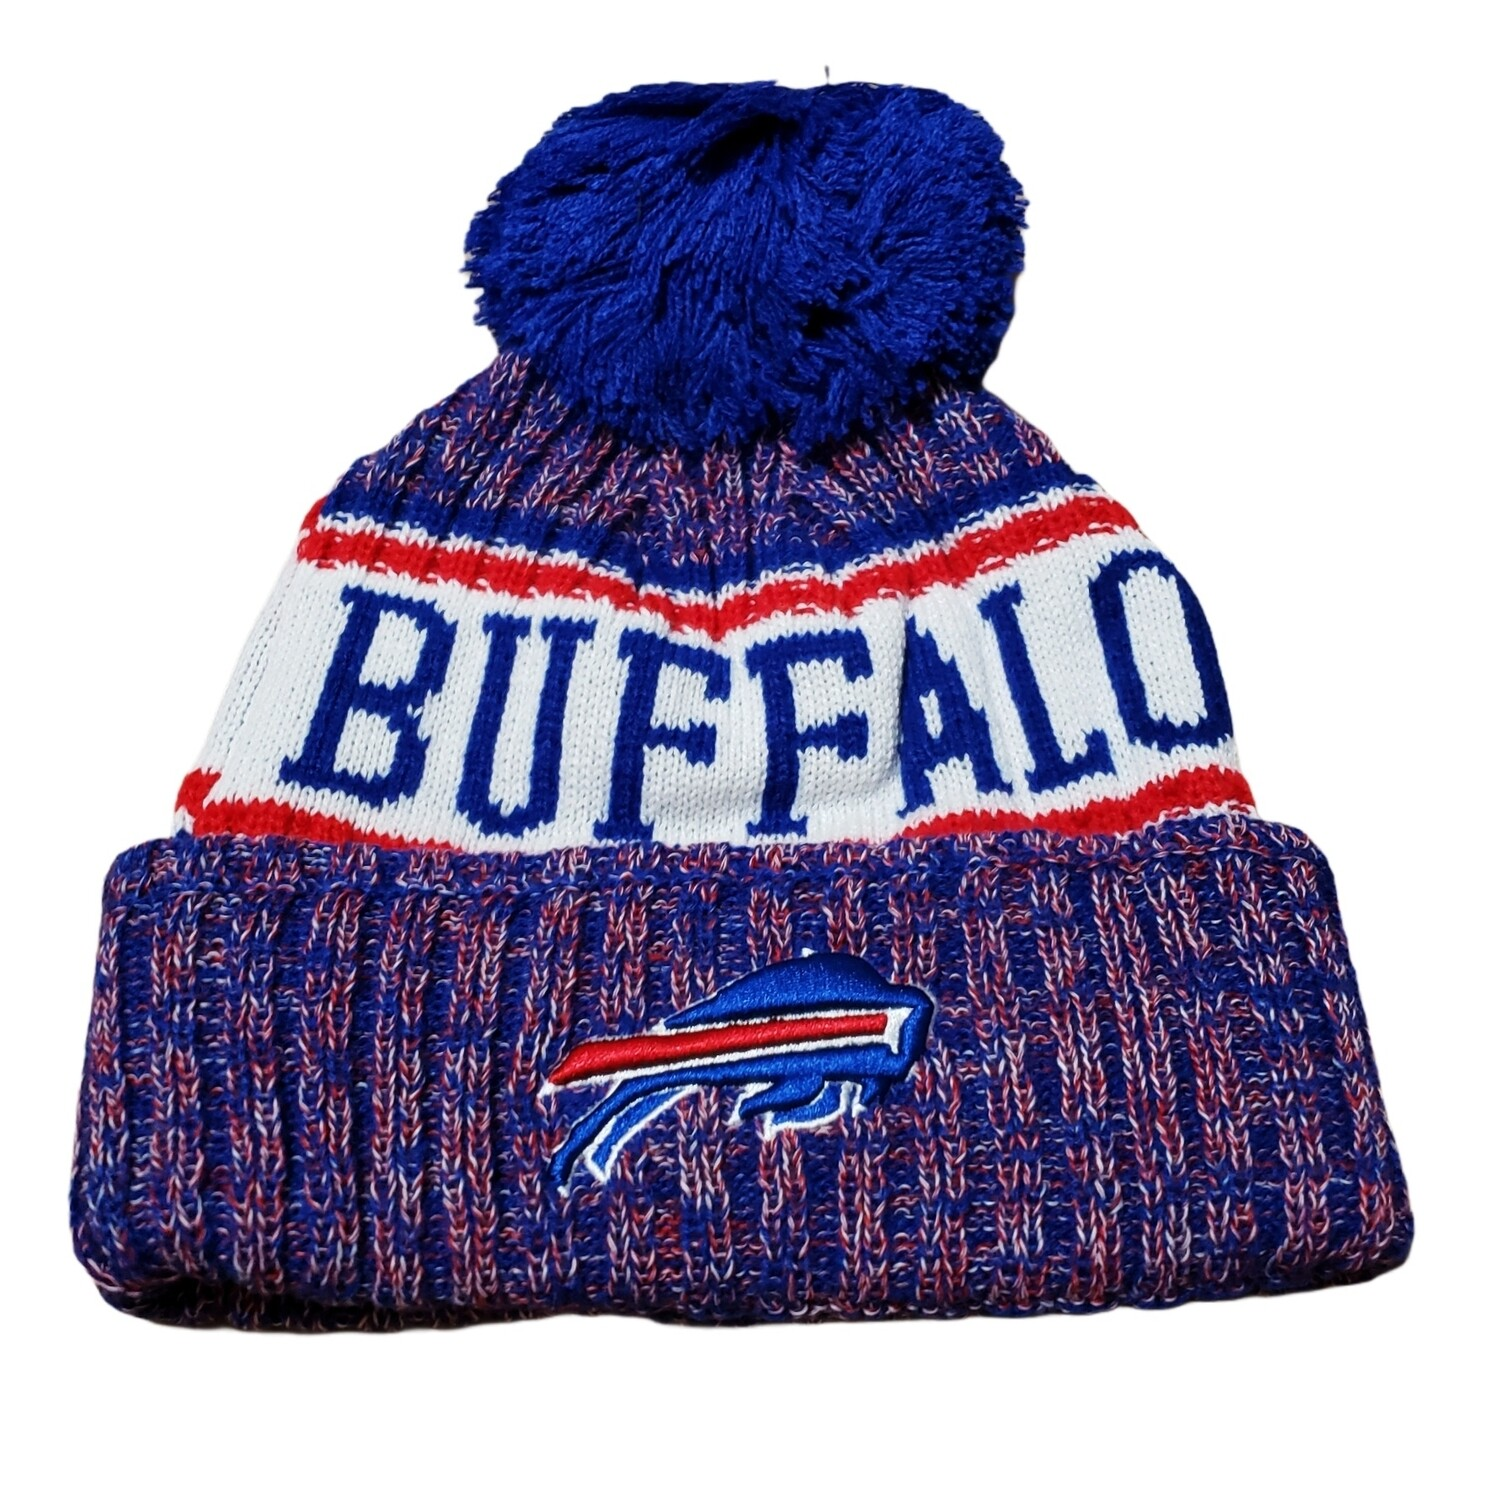 Buffalo Bills Beanie with Pom